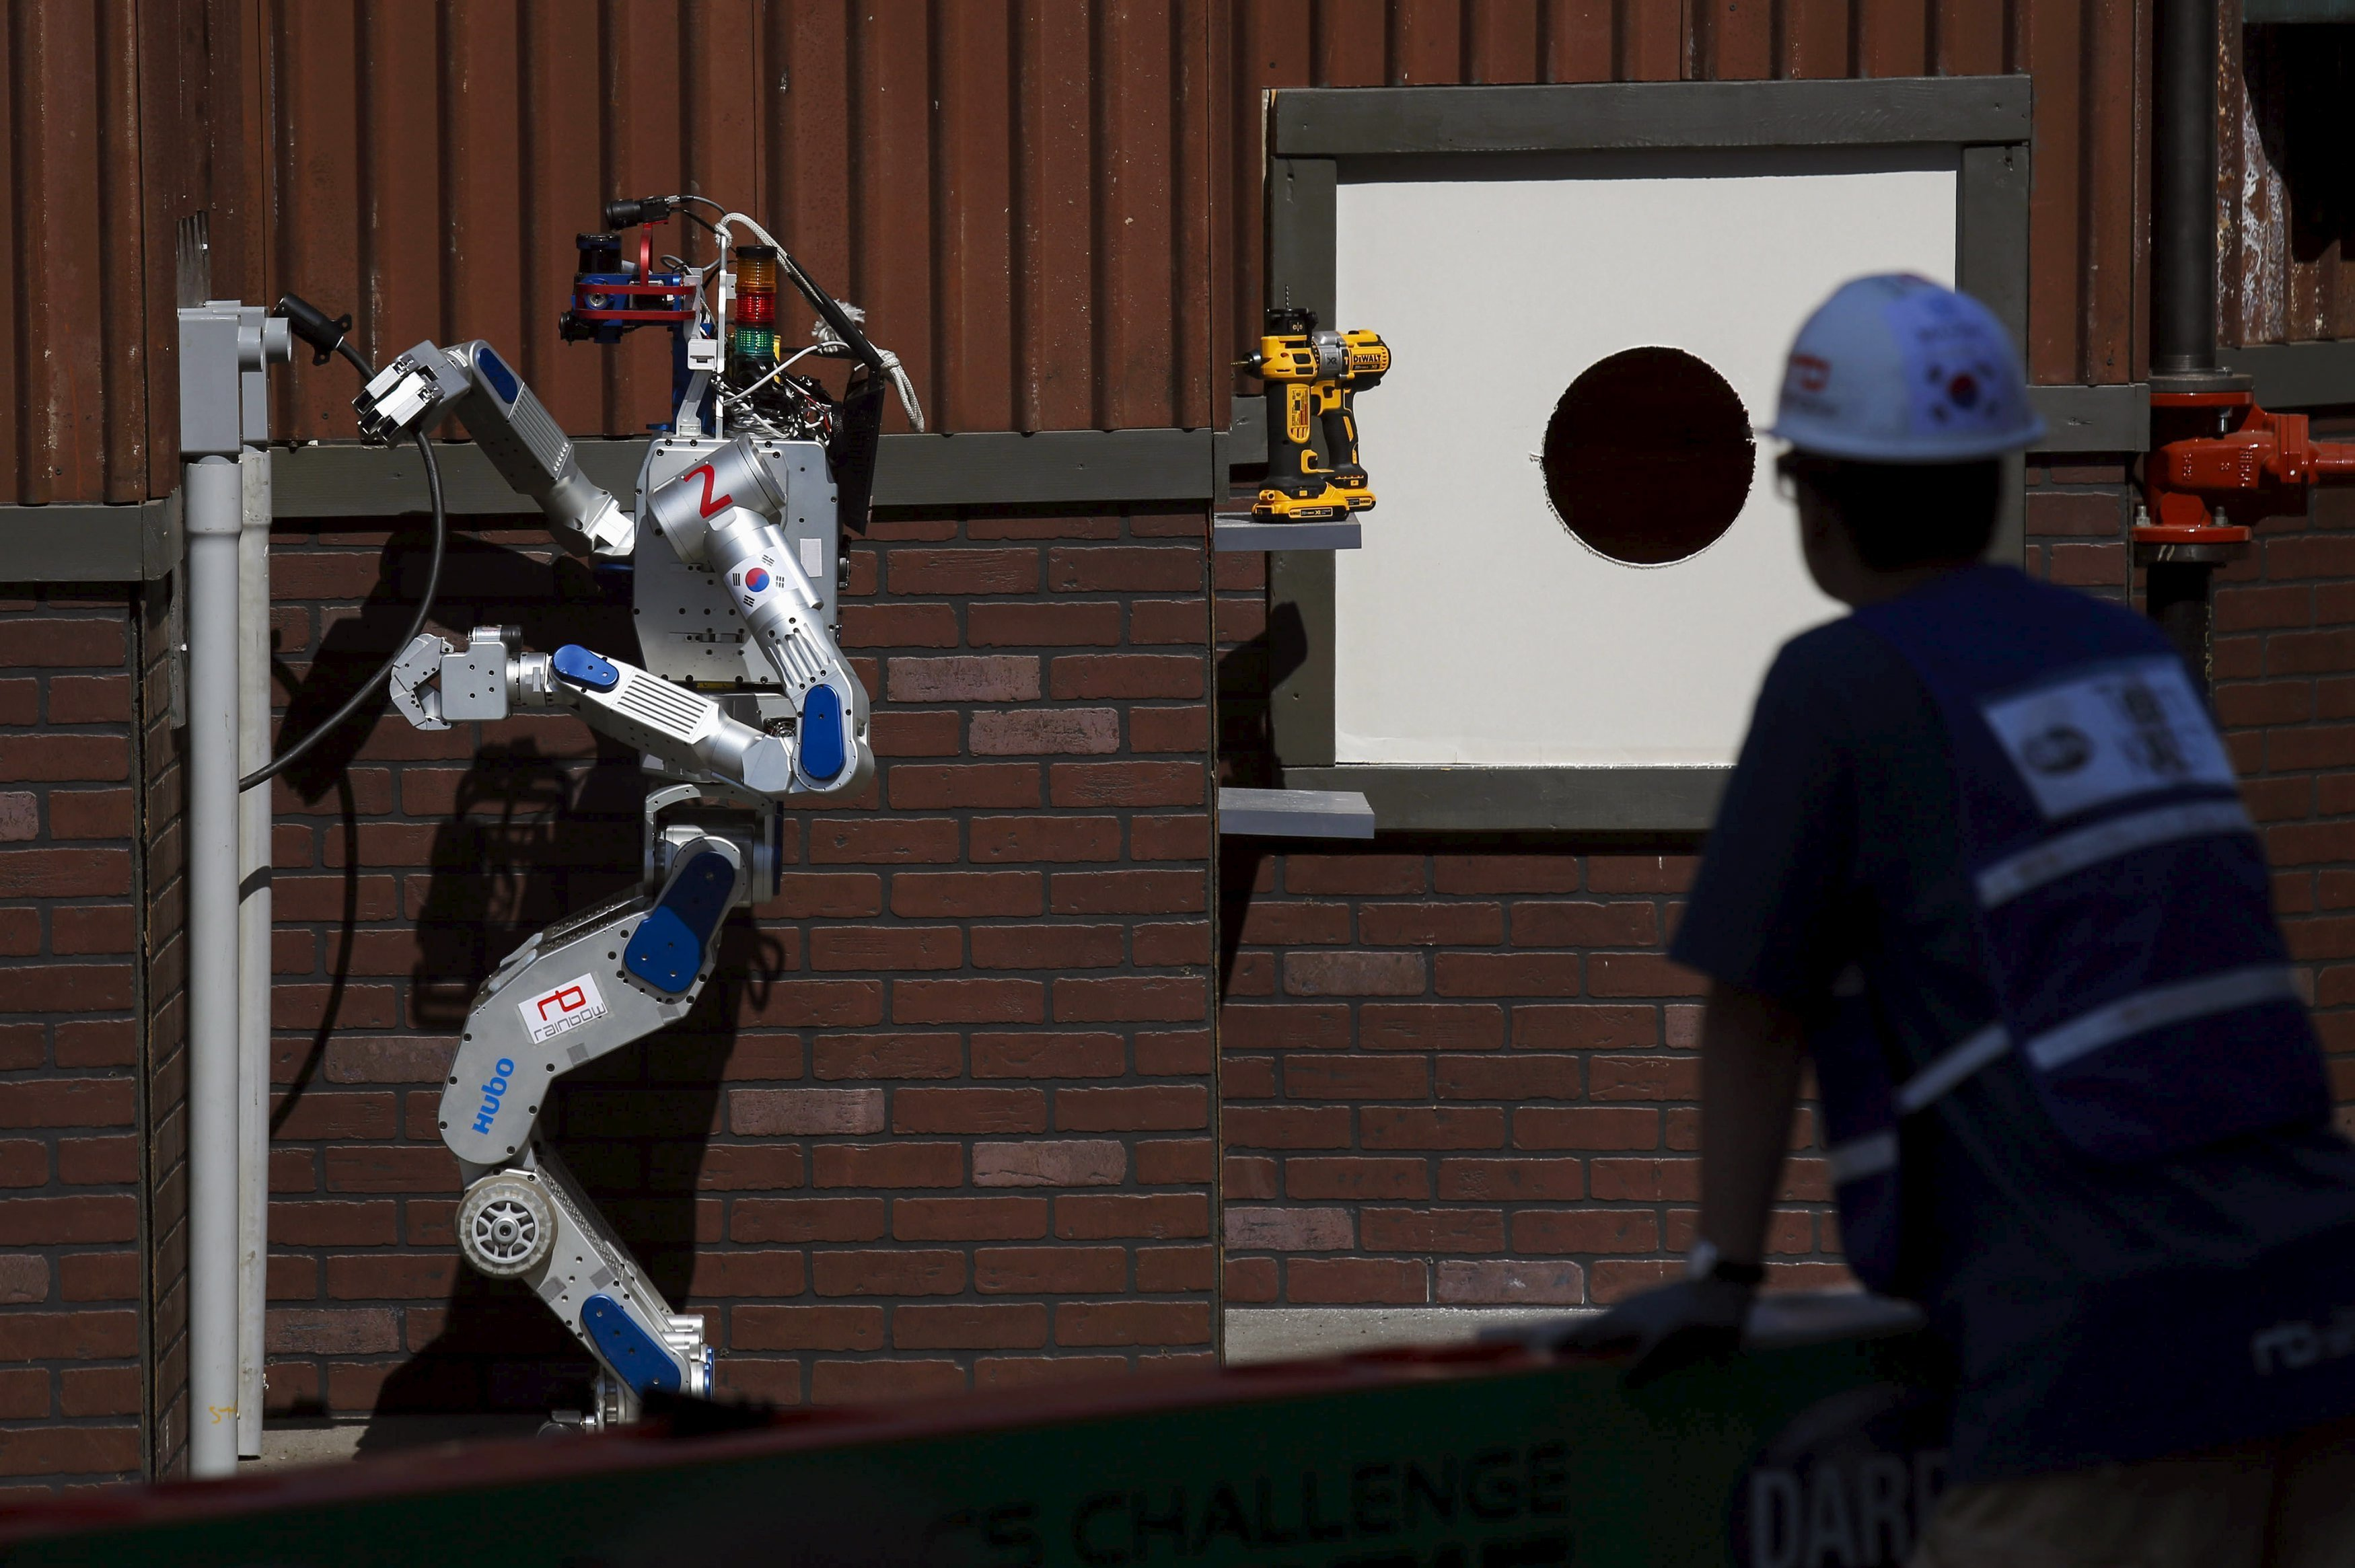 The Team KAIST DRC-Hubo robot completes the plug task before winning the finals of the Defense Advanced Research Projects Agency (DARPA) Robotic Challenge in Pomona, California June 6, 2015